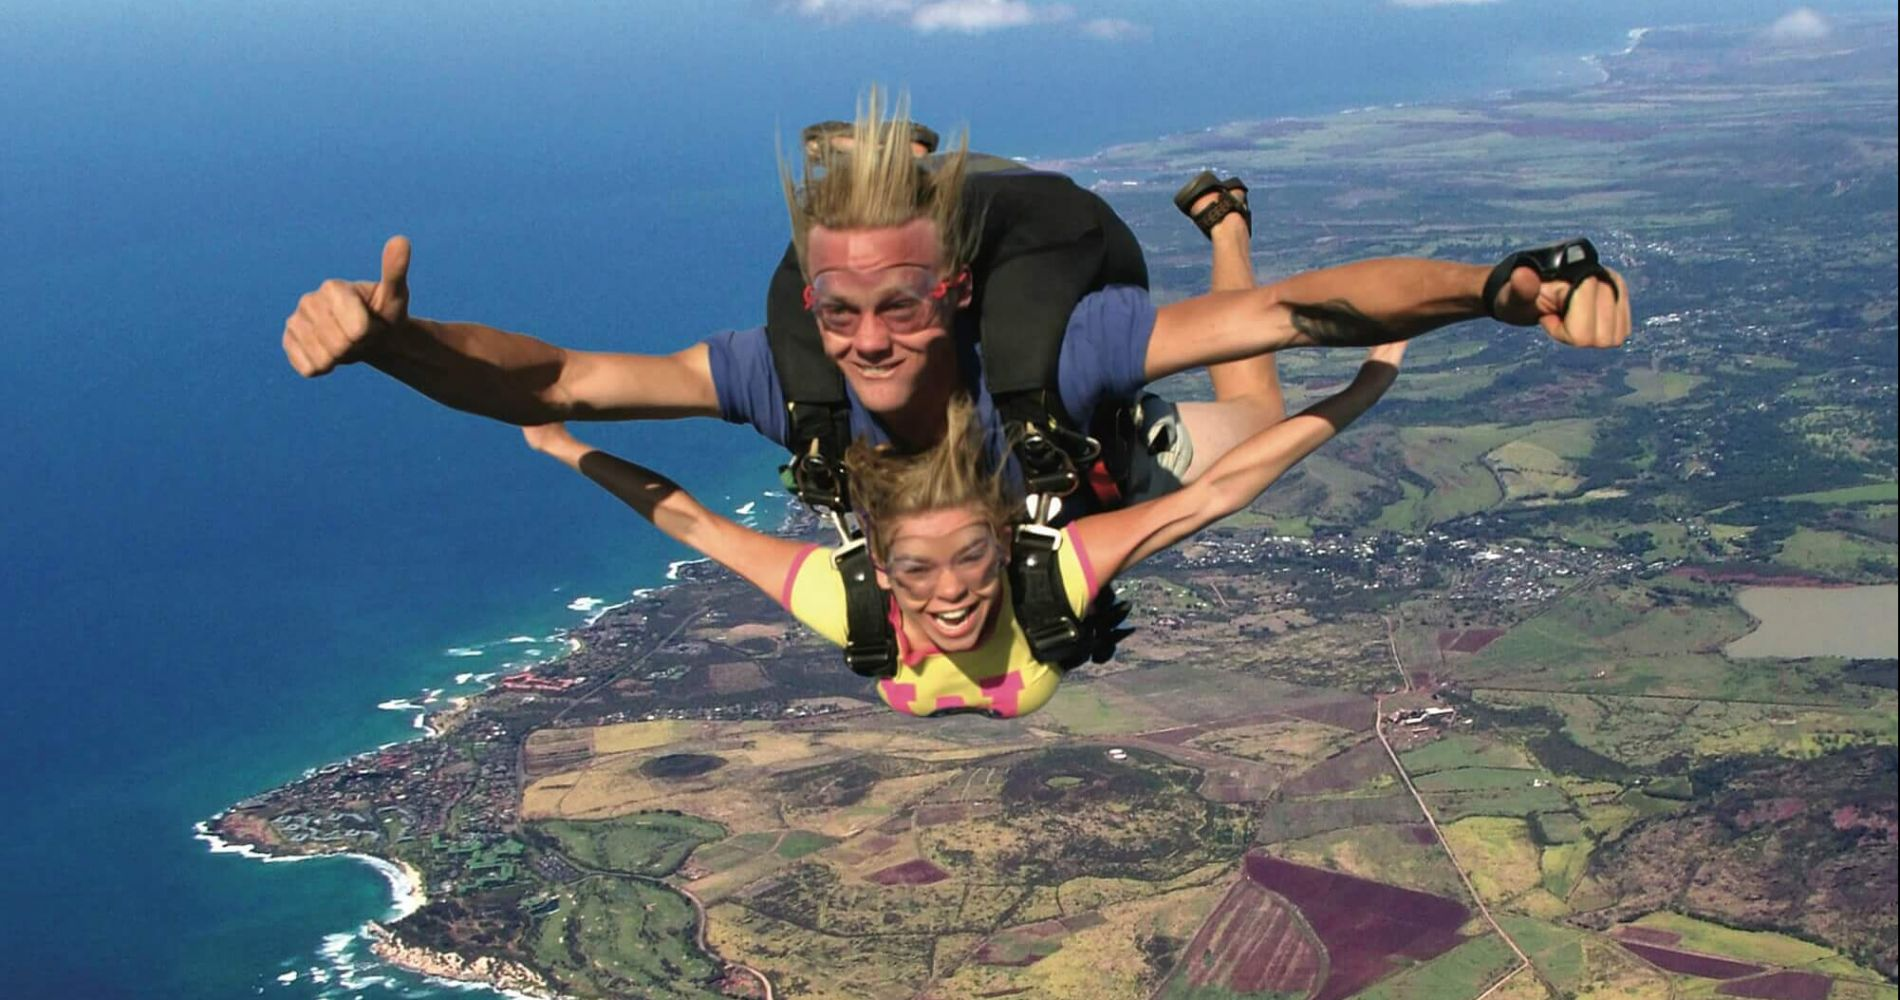 Tandem skydive in Honolulu